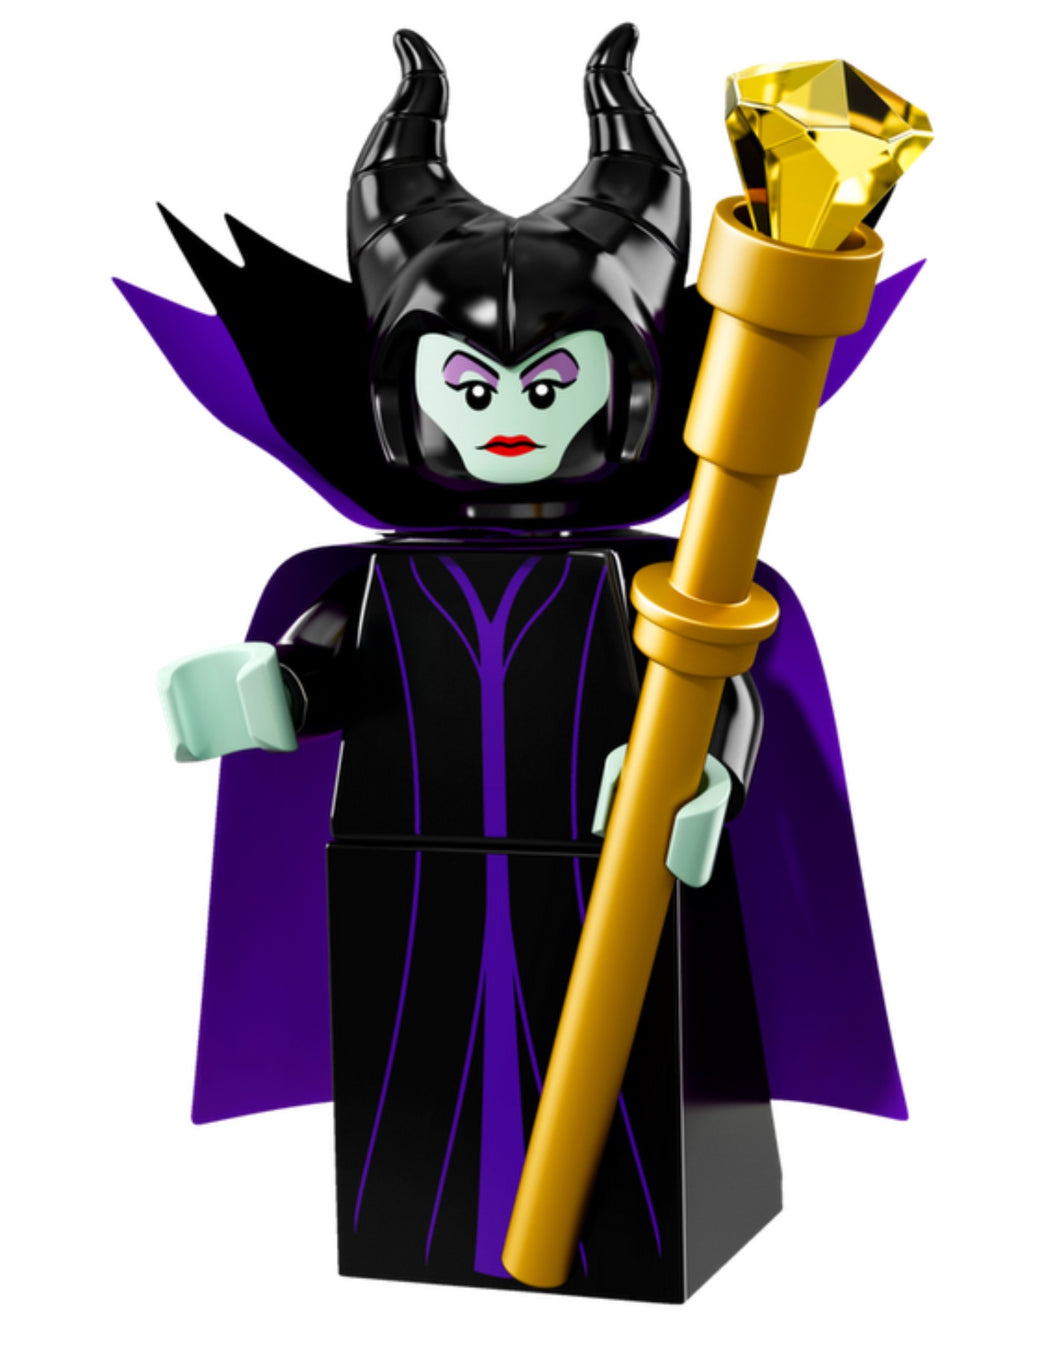 LEGO Disney Series 16 Collectible Minifigure - Maleficent (71012)